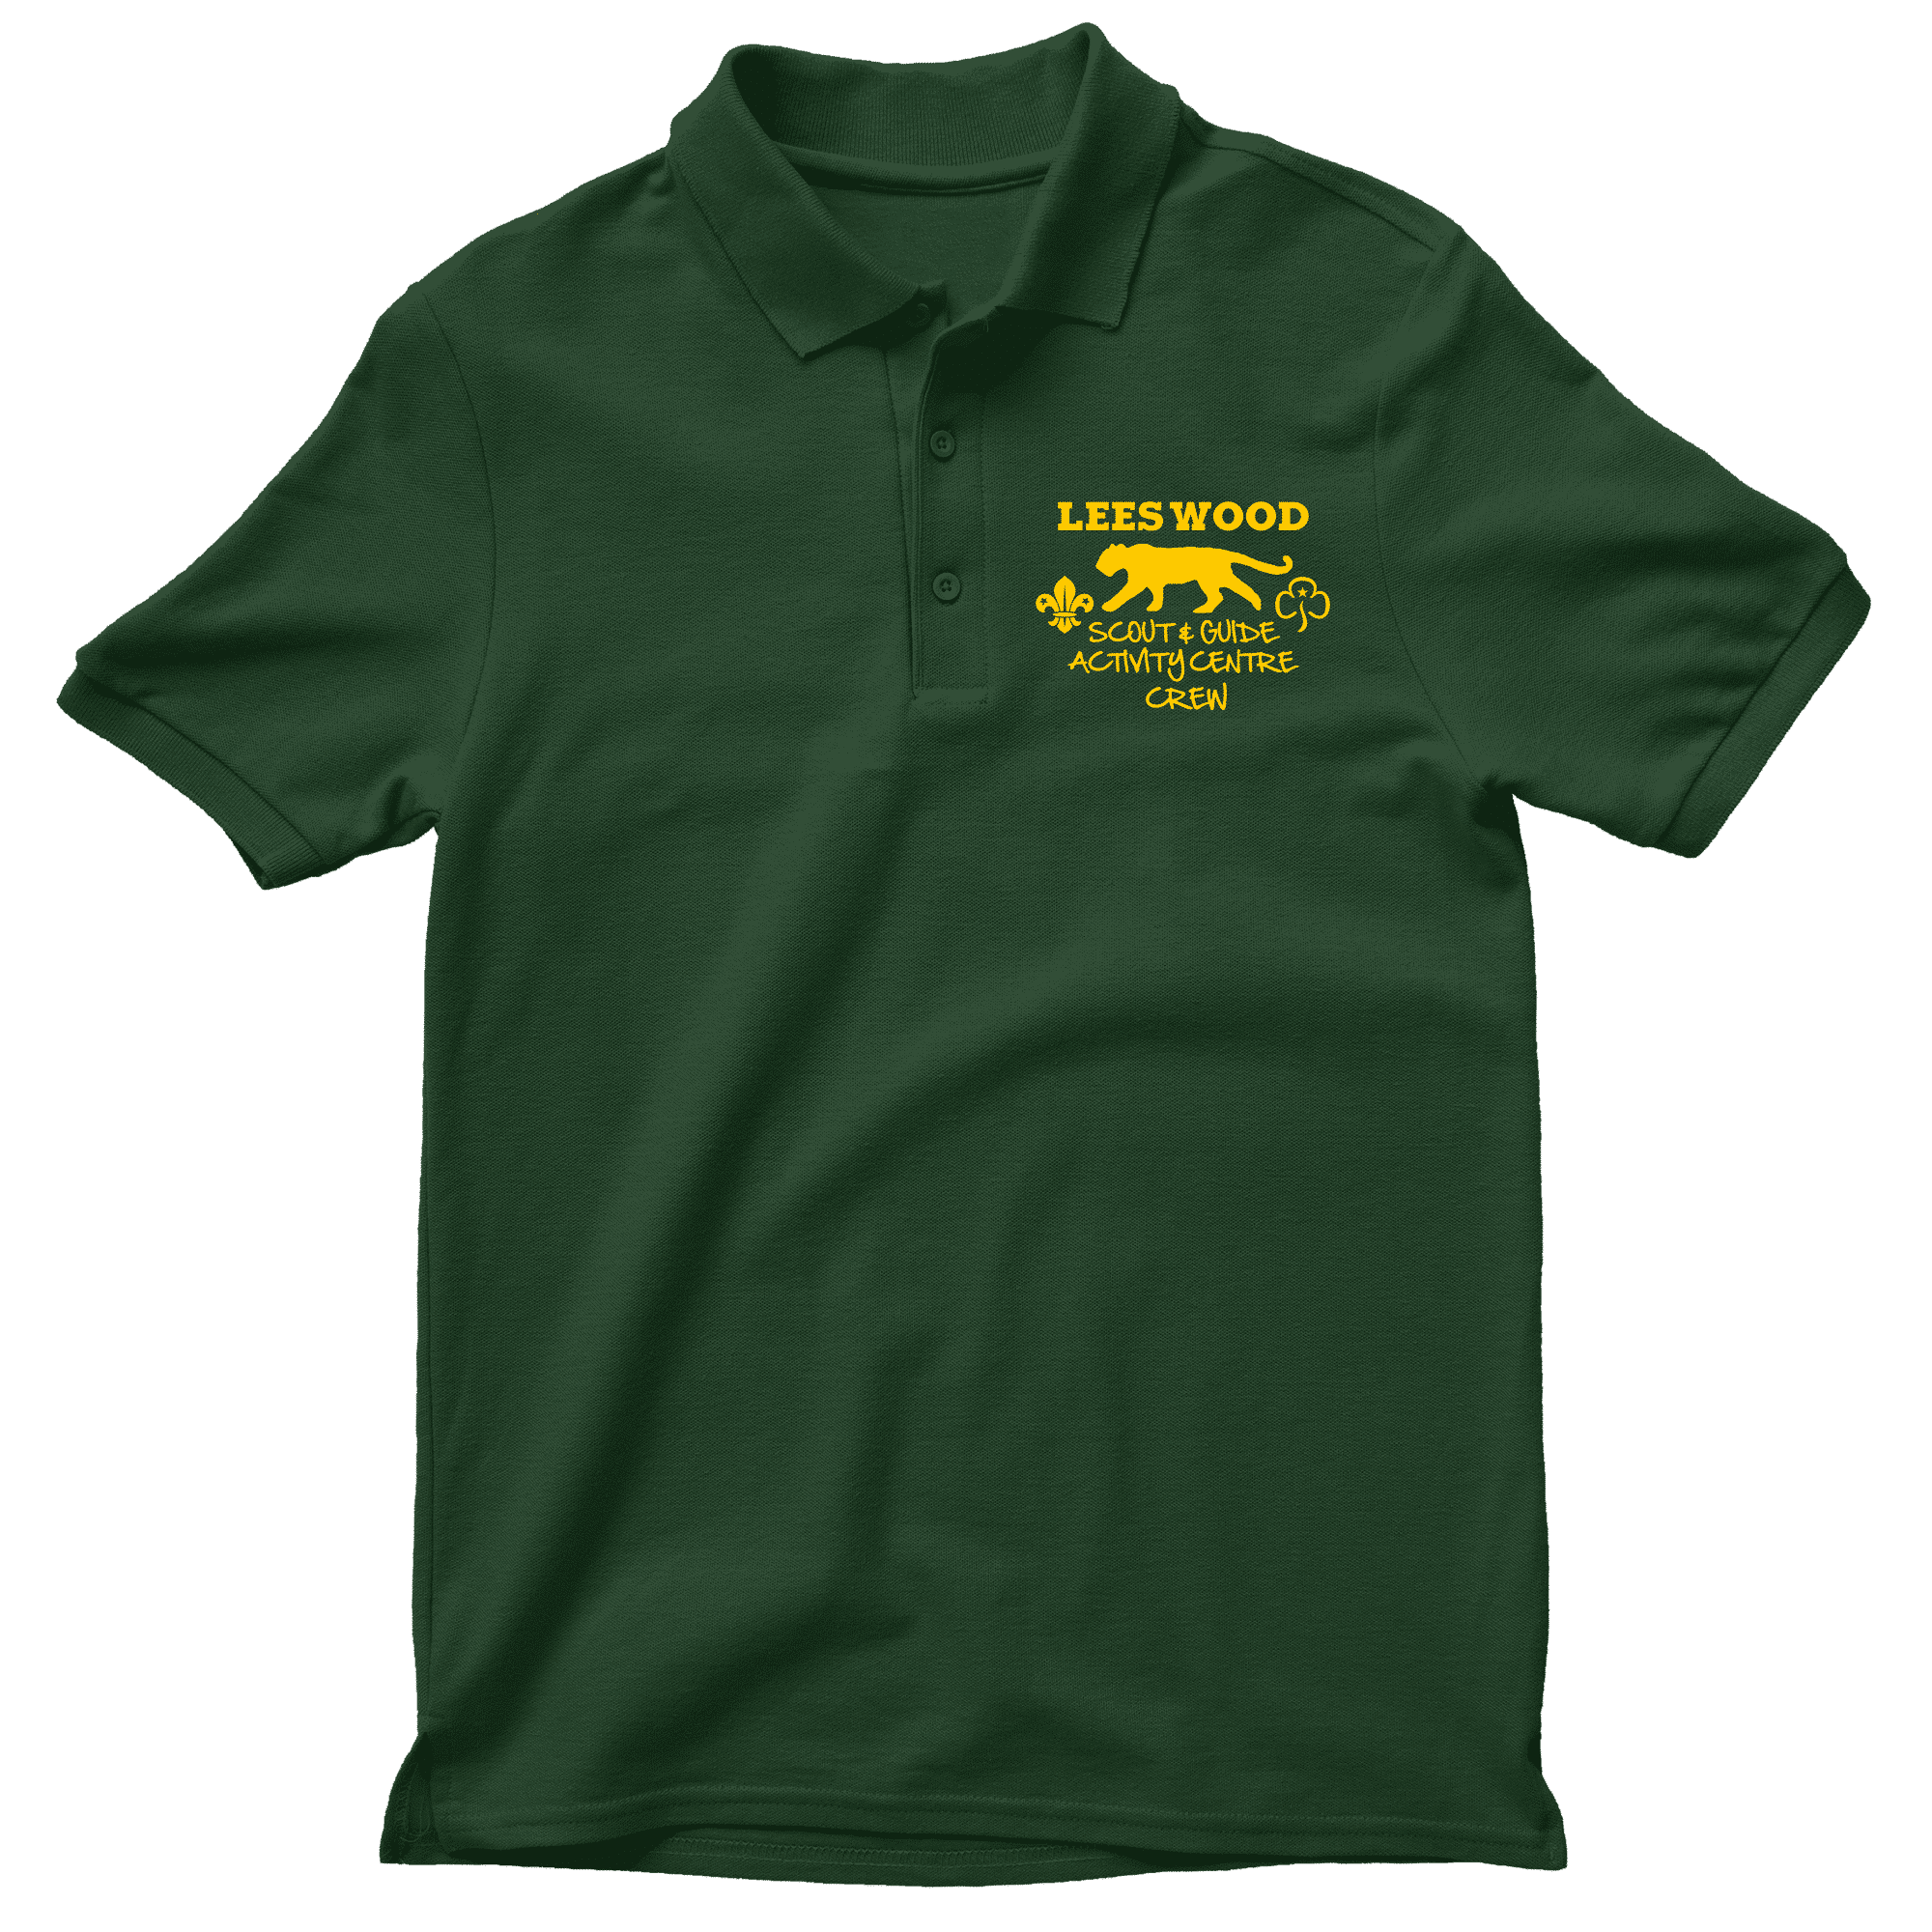 Forest green lees wood crew polo shirt merrrch for Forest green polo shirts